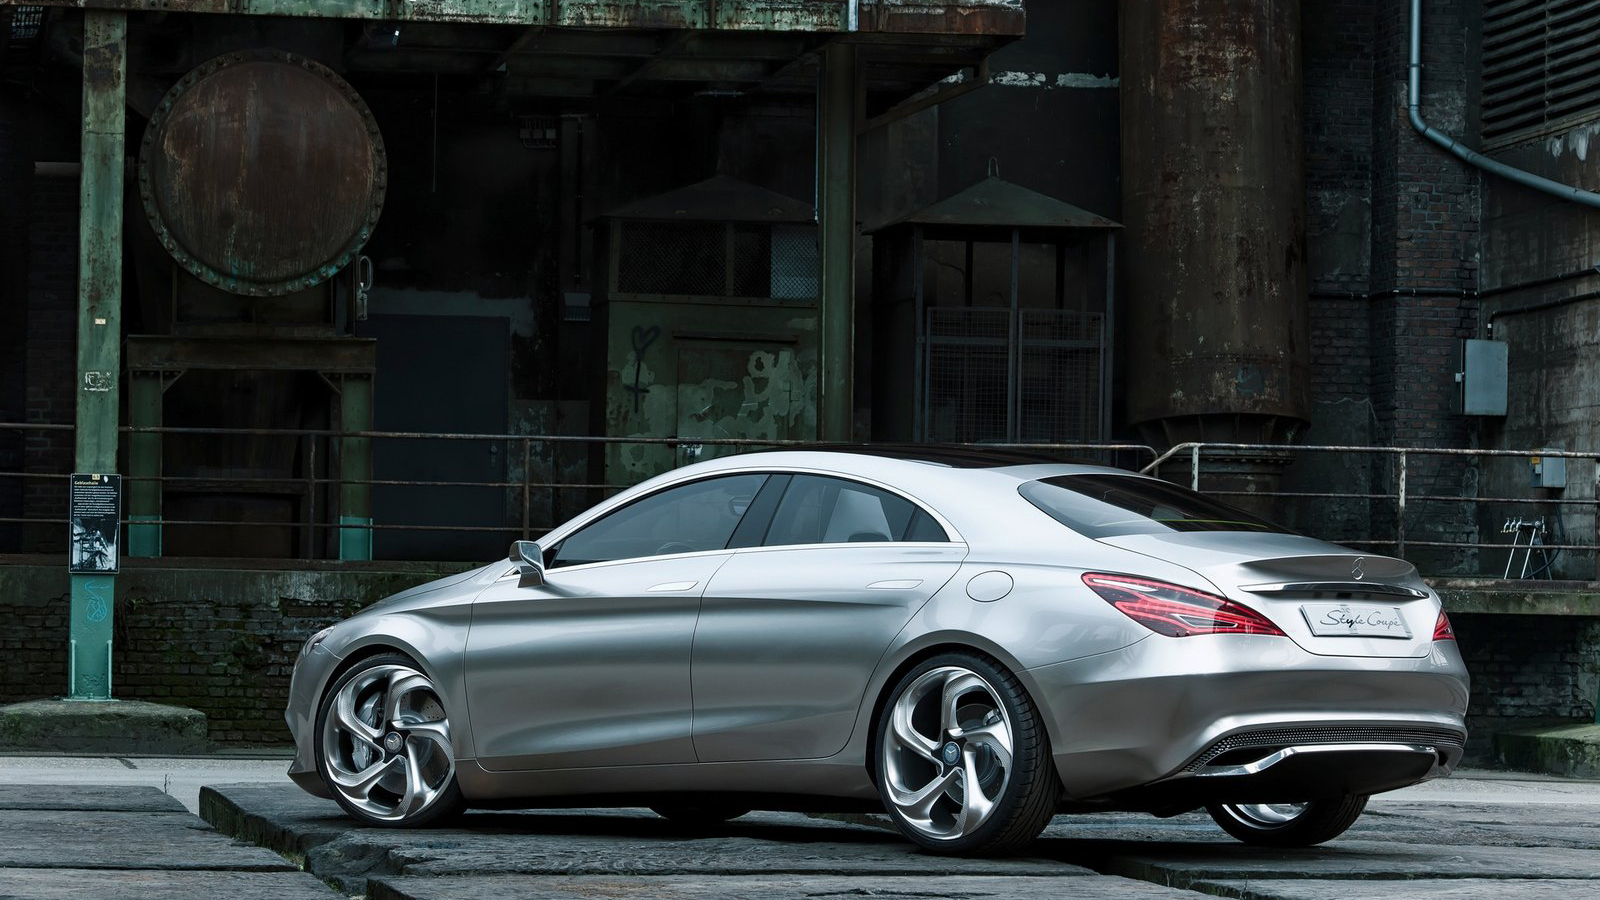 2012 mercedes benz concept style coupe 4wd on 20 2 0 for Mercedes benz 4wd